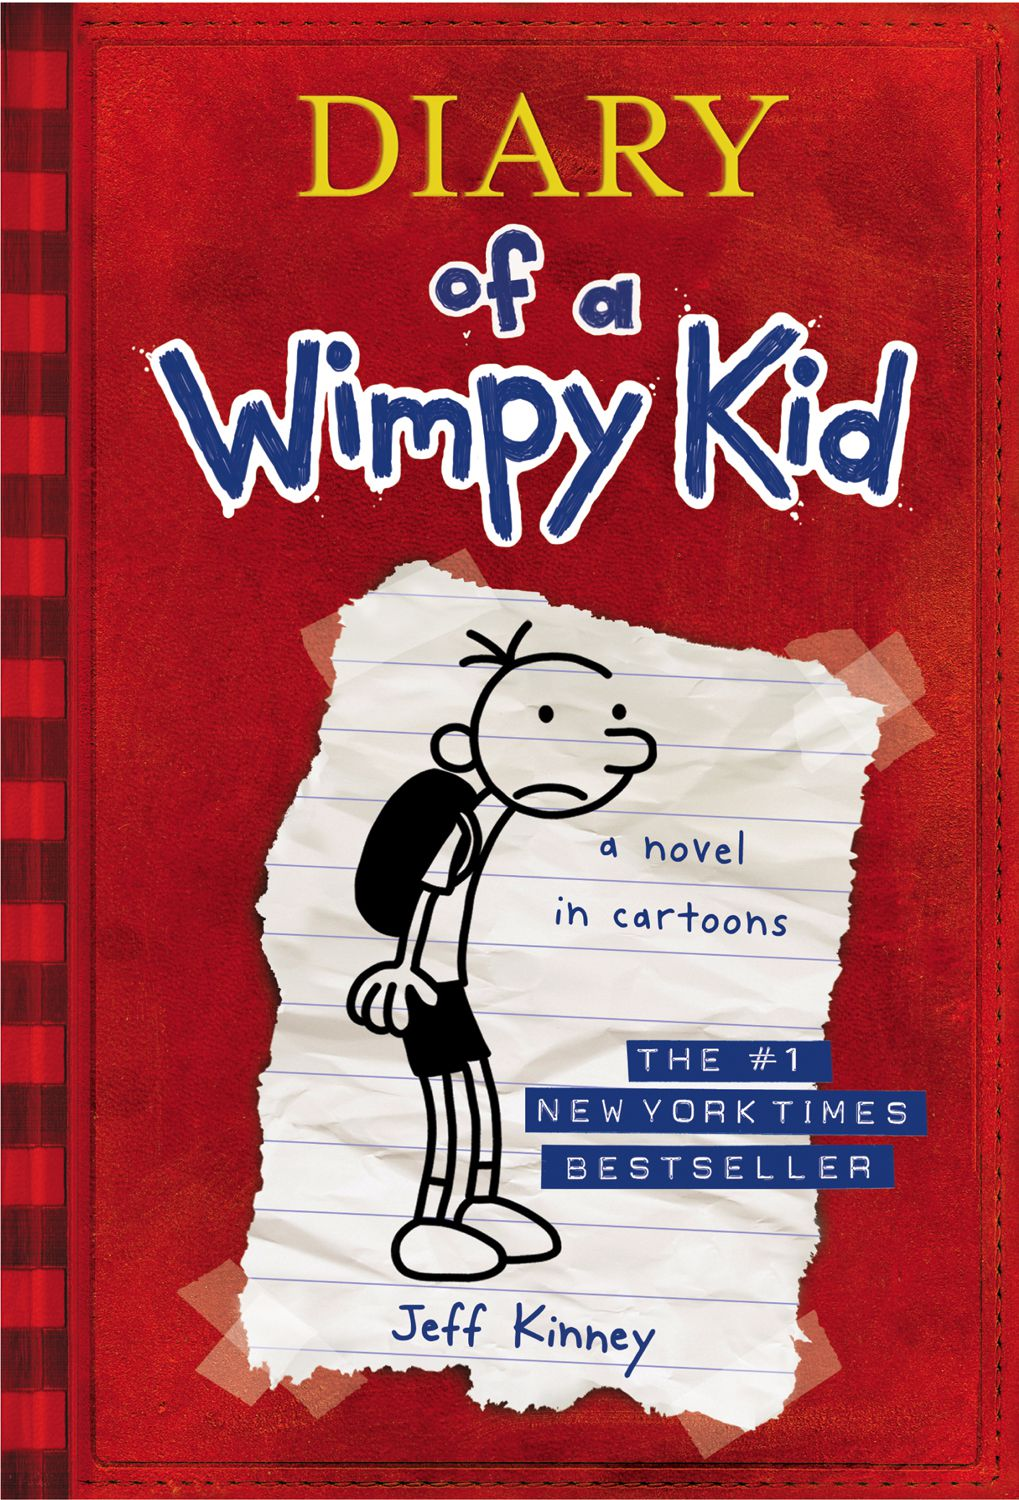 The Wimpy Kid Movie Diary - Diary of a Wimpy Kid Wiki